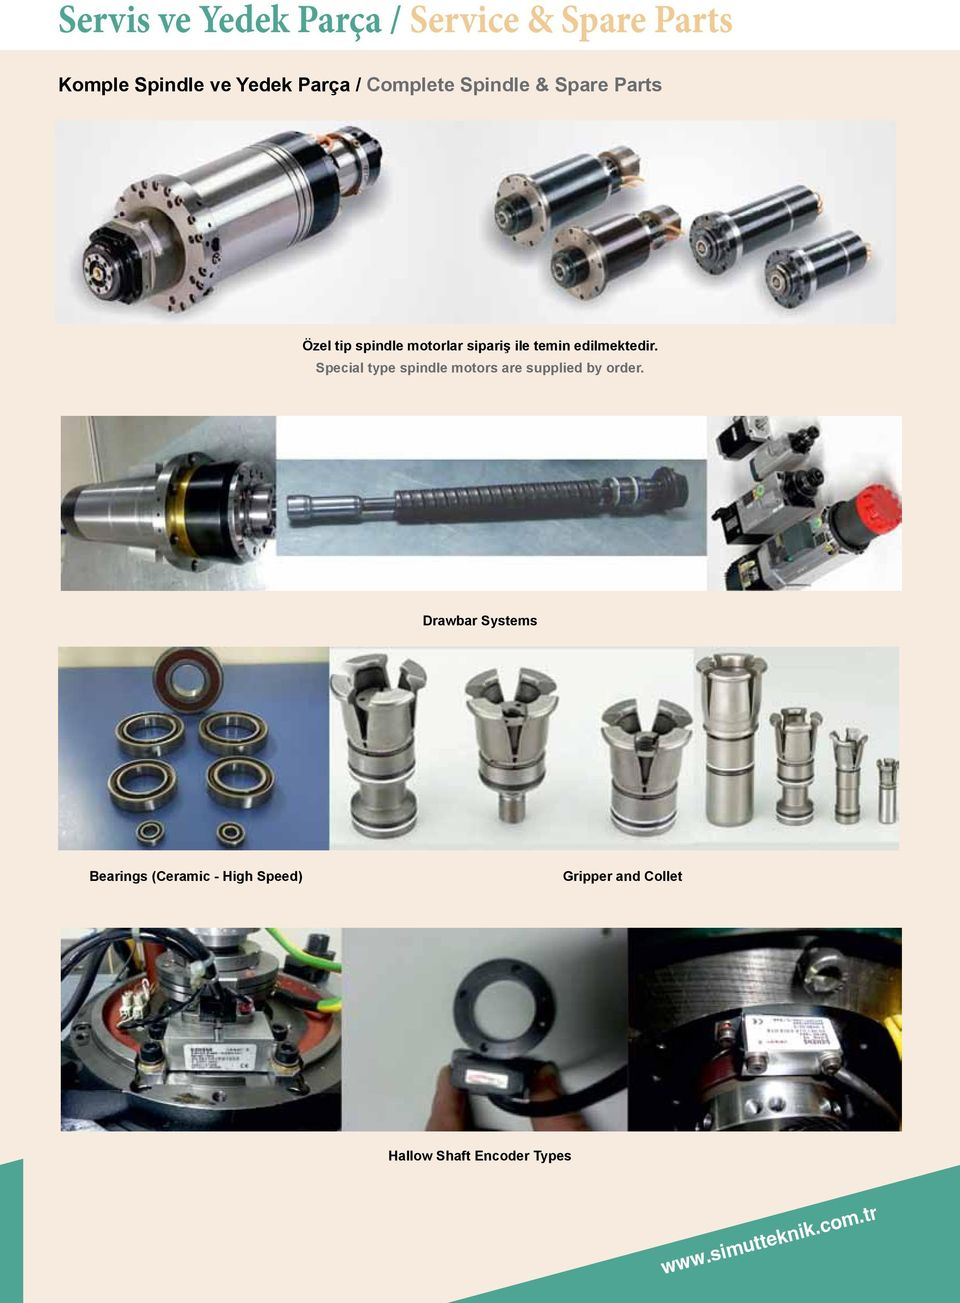 edilmektedir. Special type spindle motors are supplied by order.